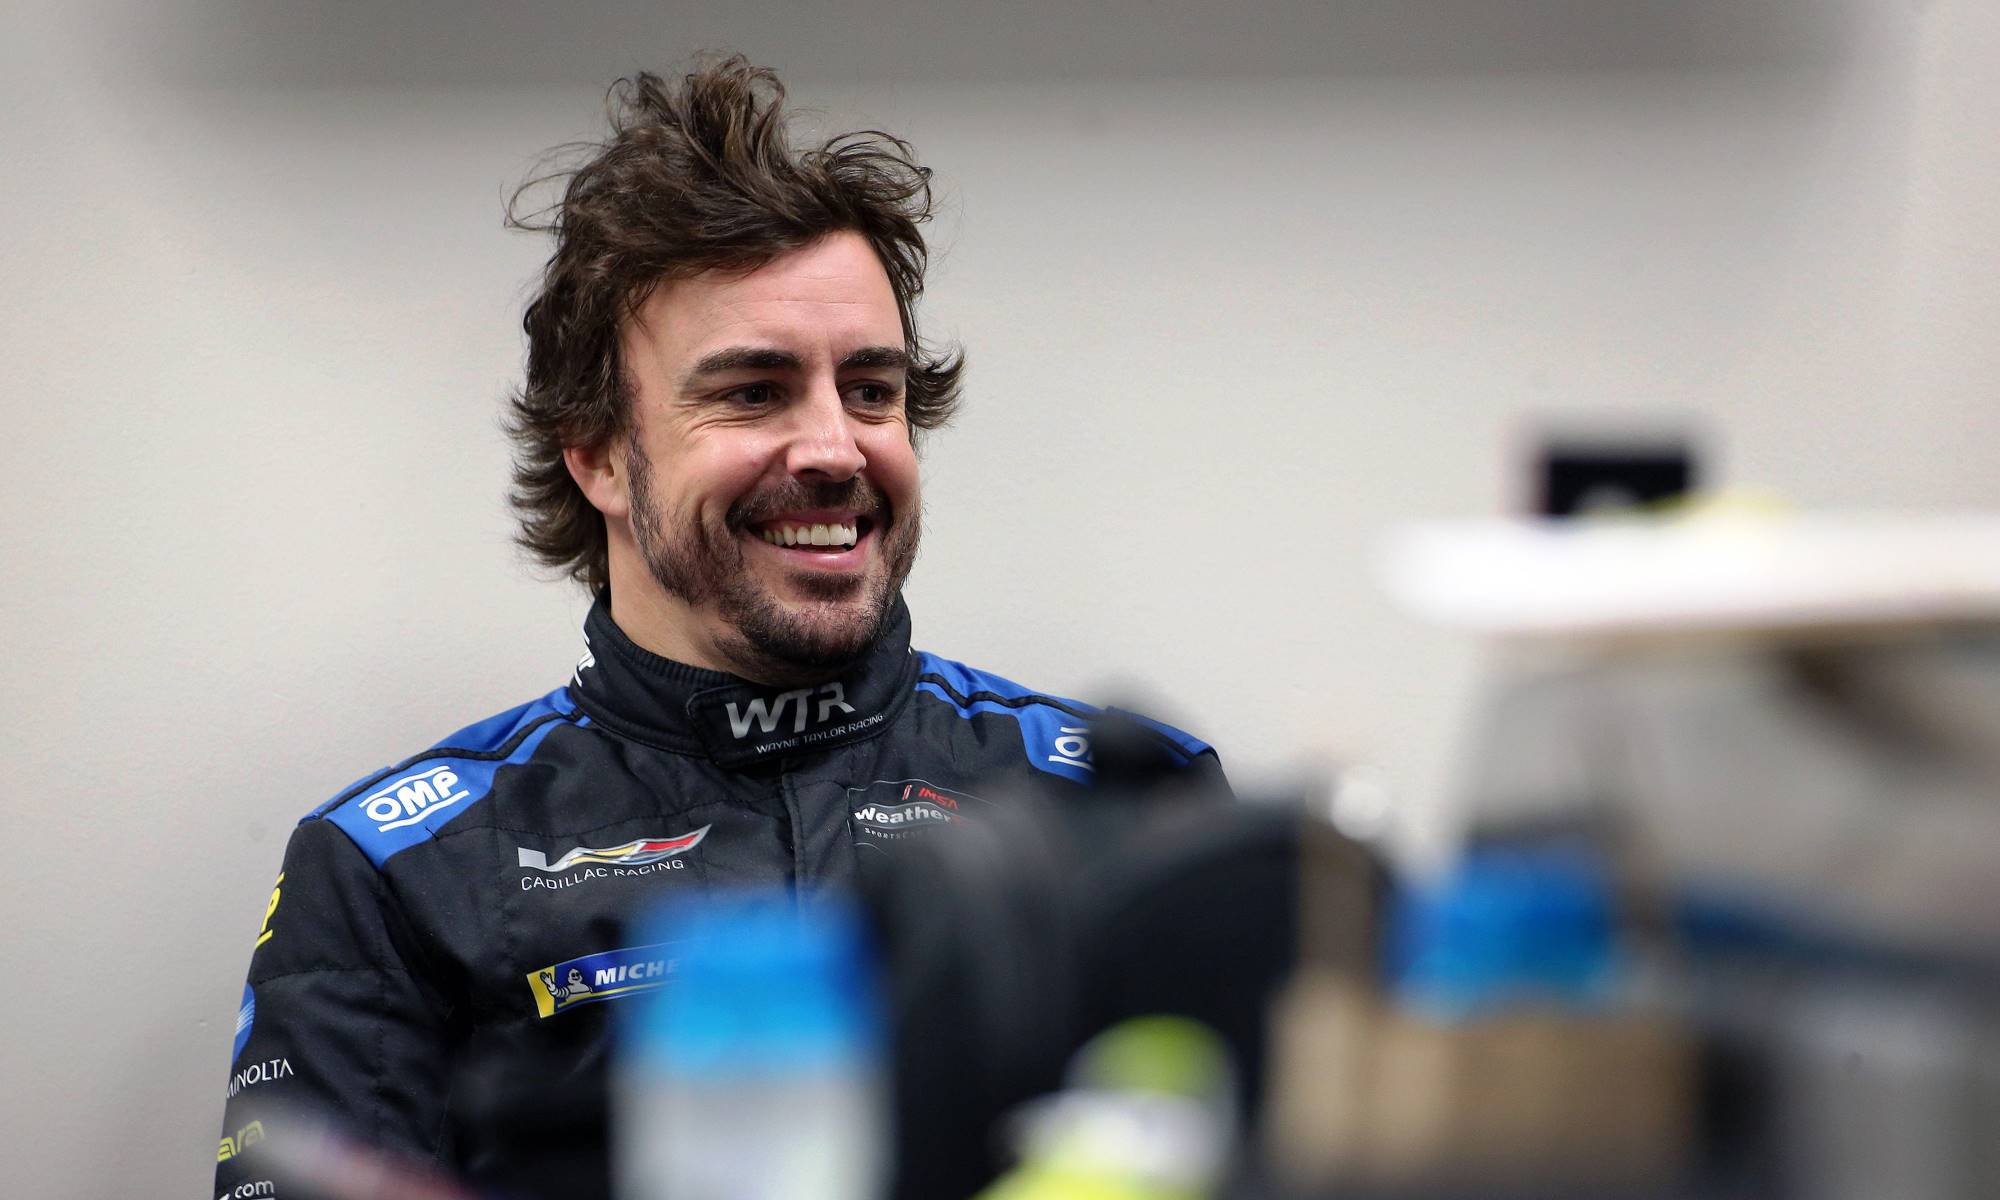 Alonso back to his winning ways